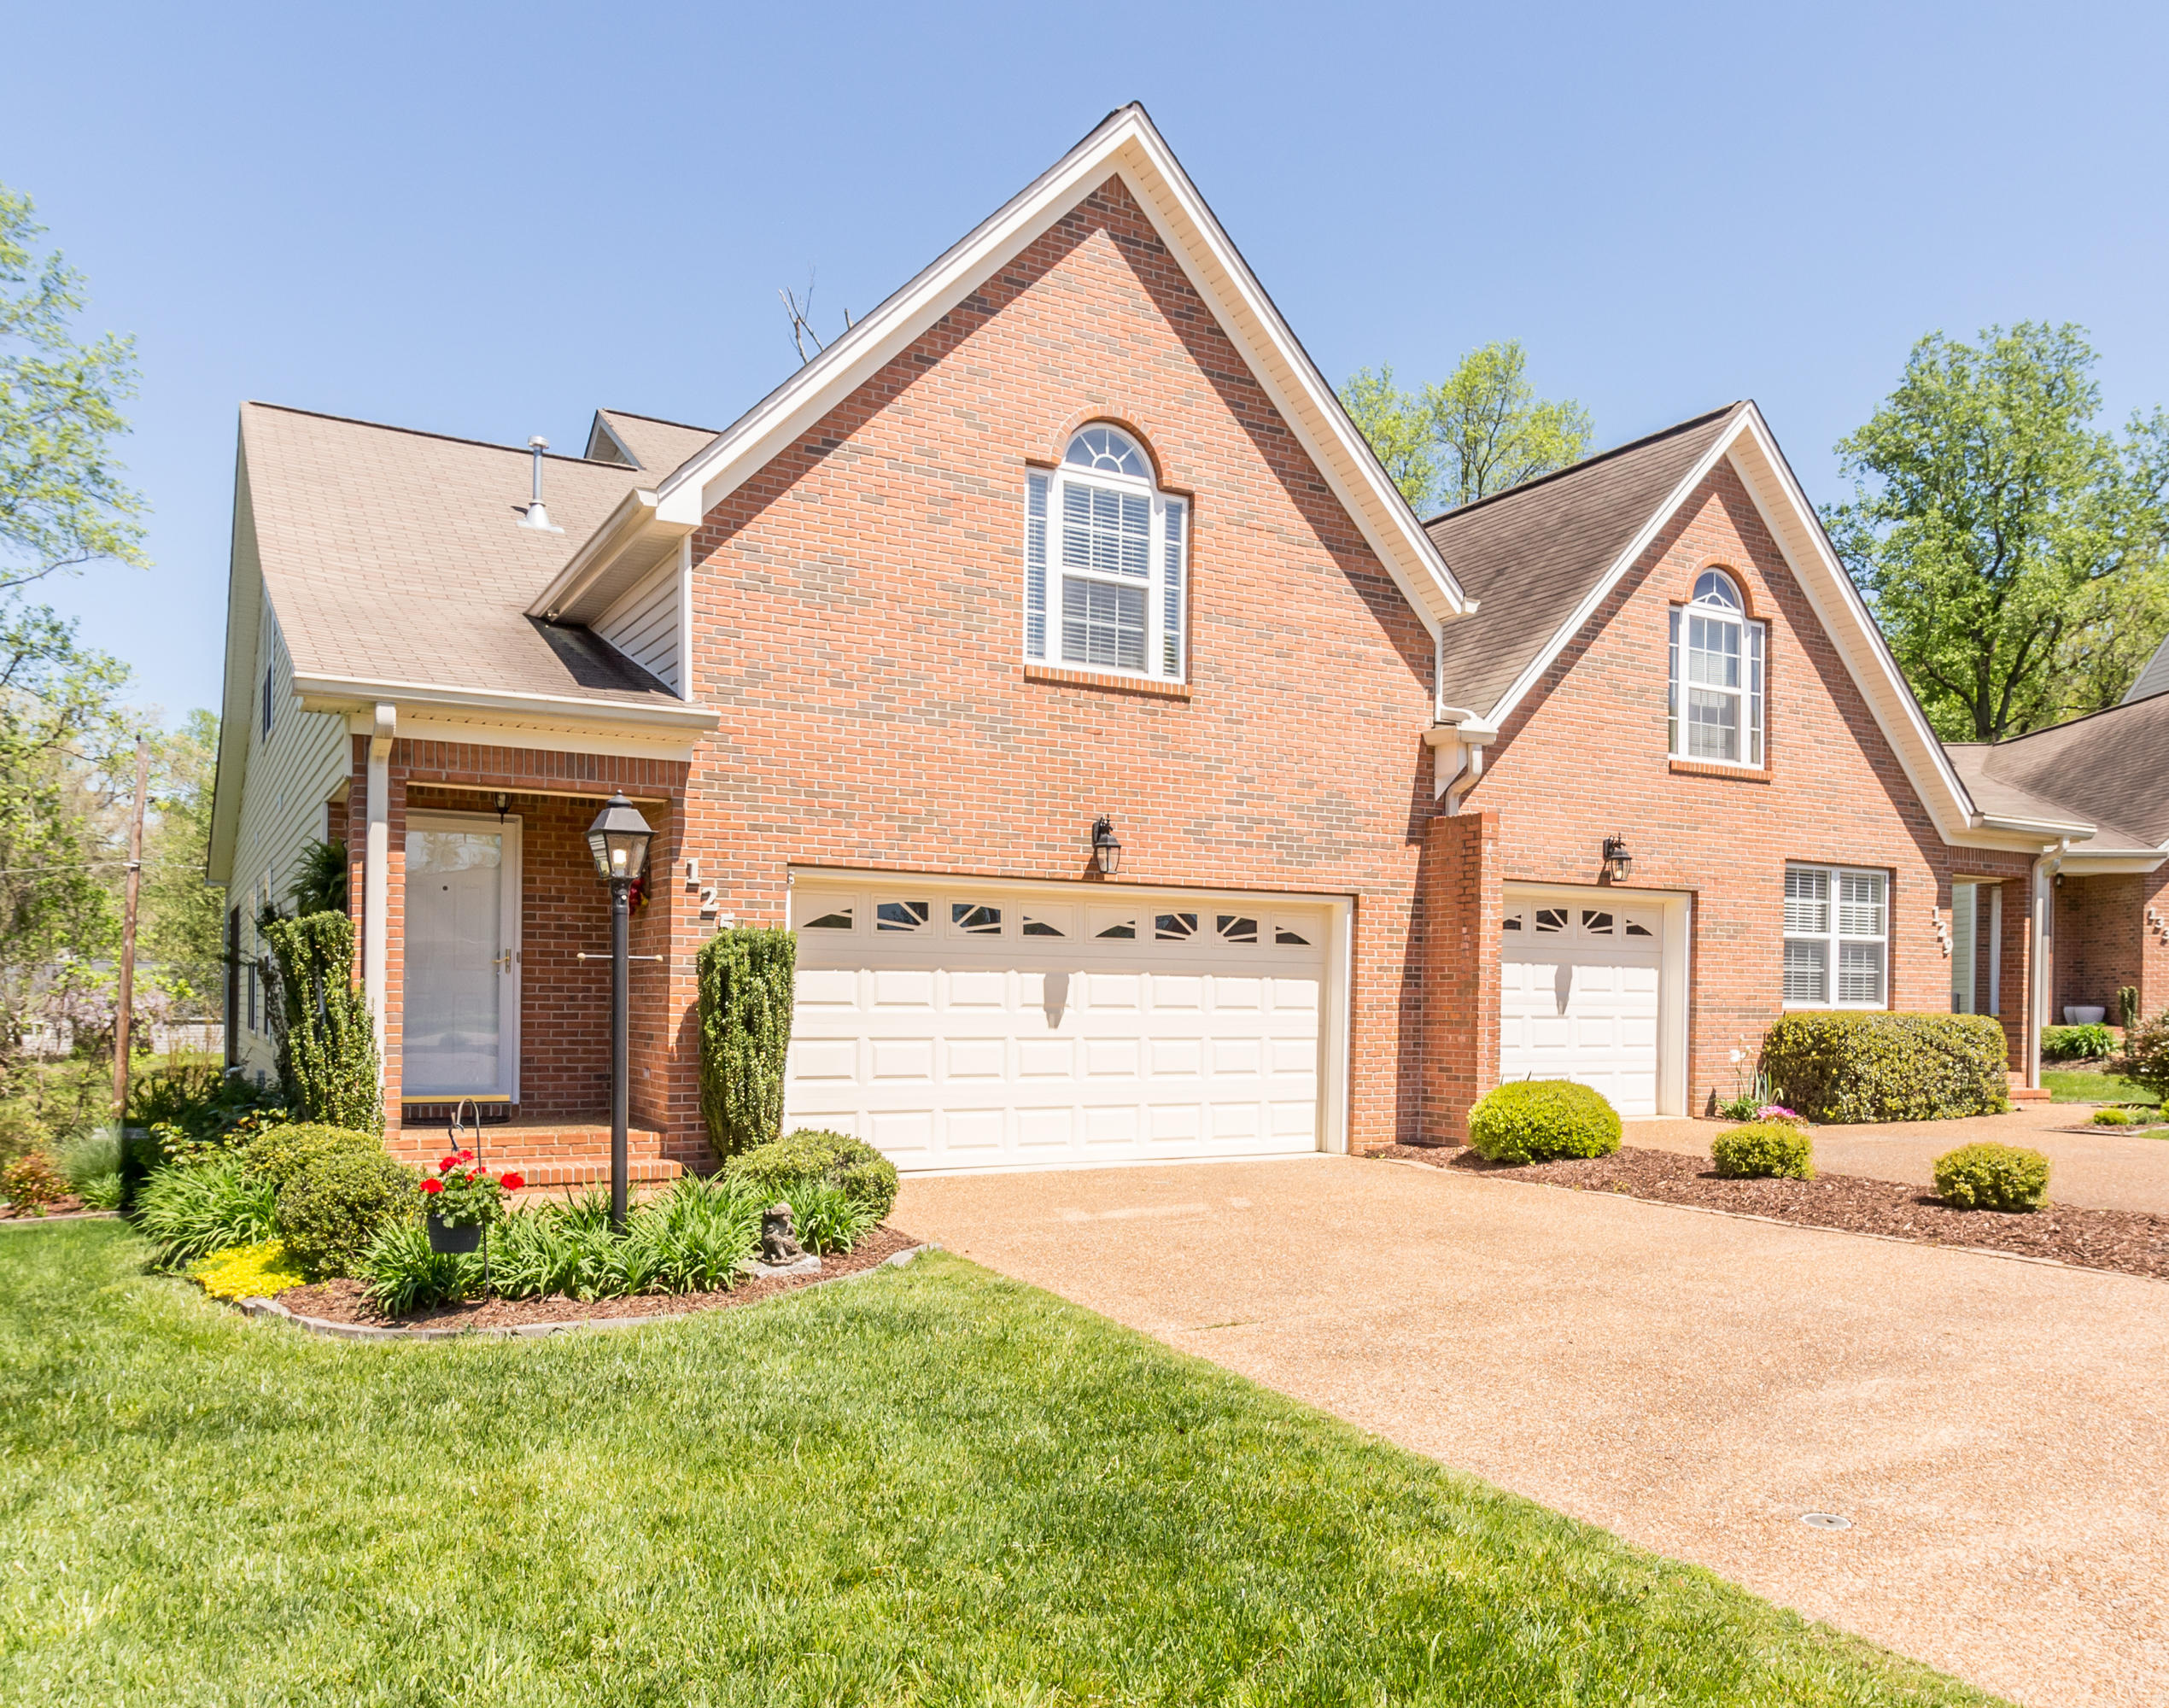 125  Wild Ginger  Tr 37415 - One of Chattanooga Homes for Sale